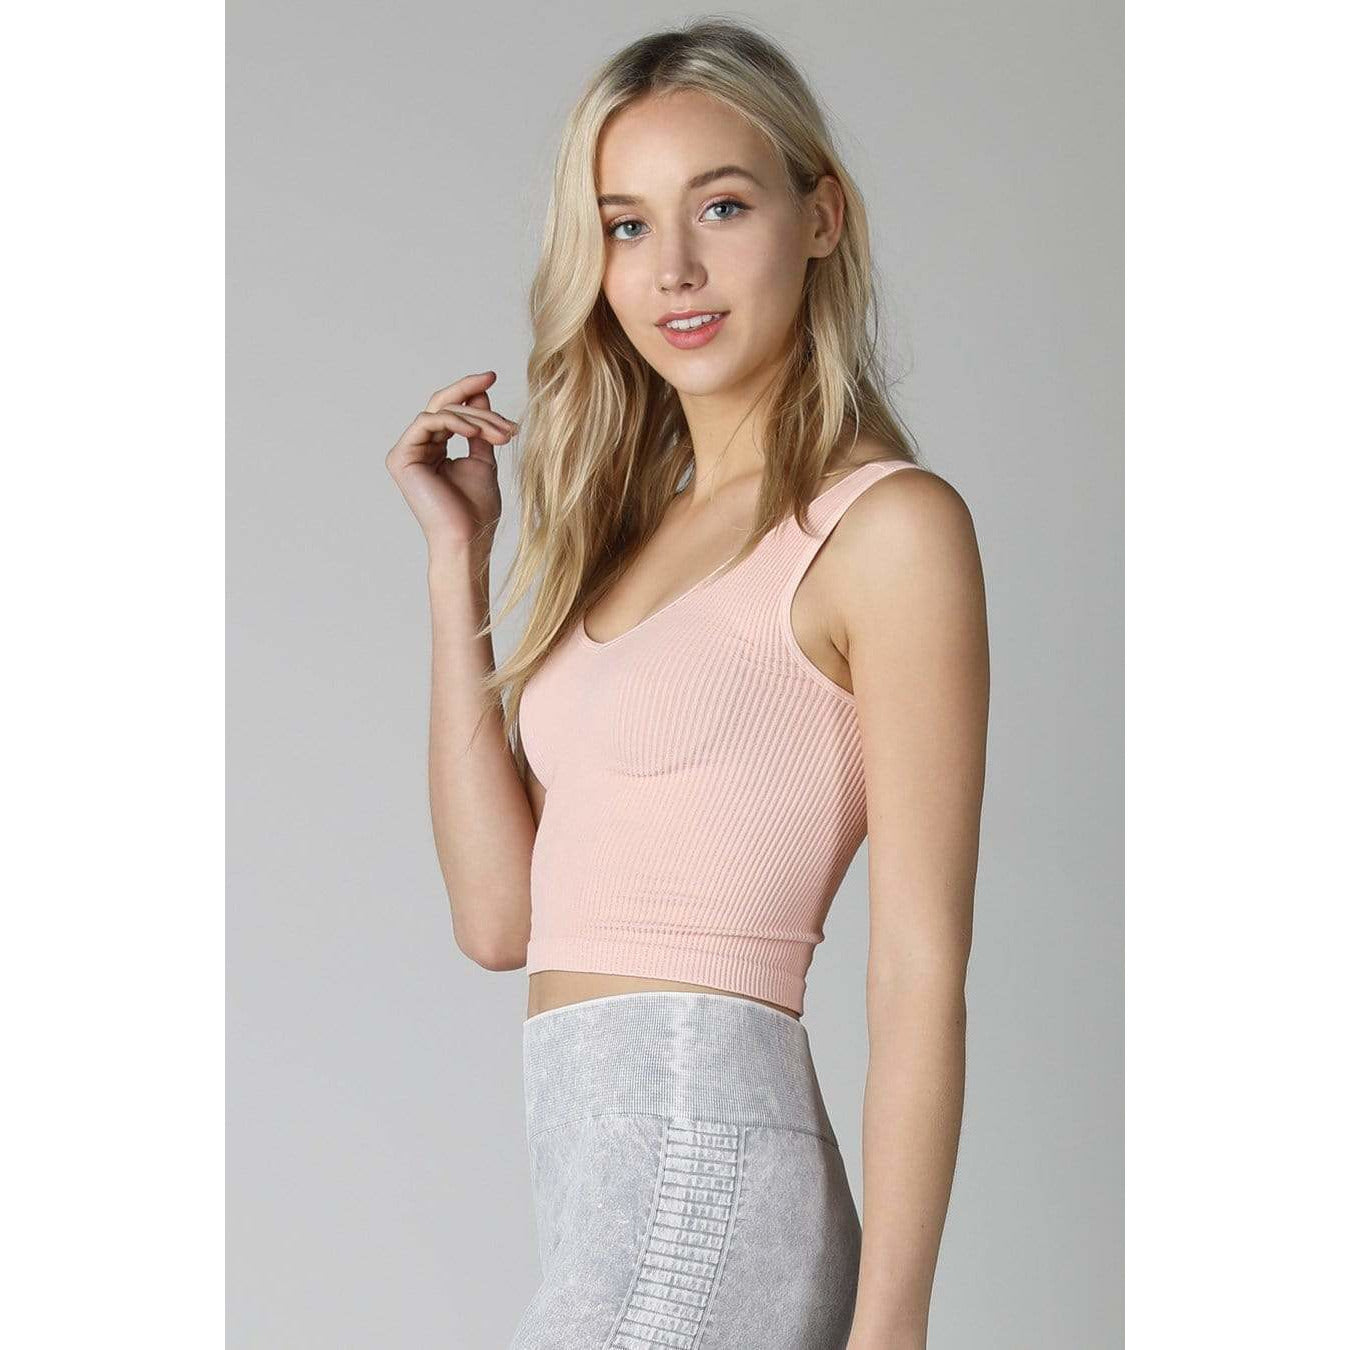 NikiBiki Vintage V-Neck Crop Top + more colours